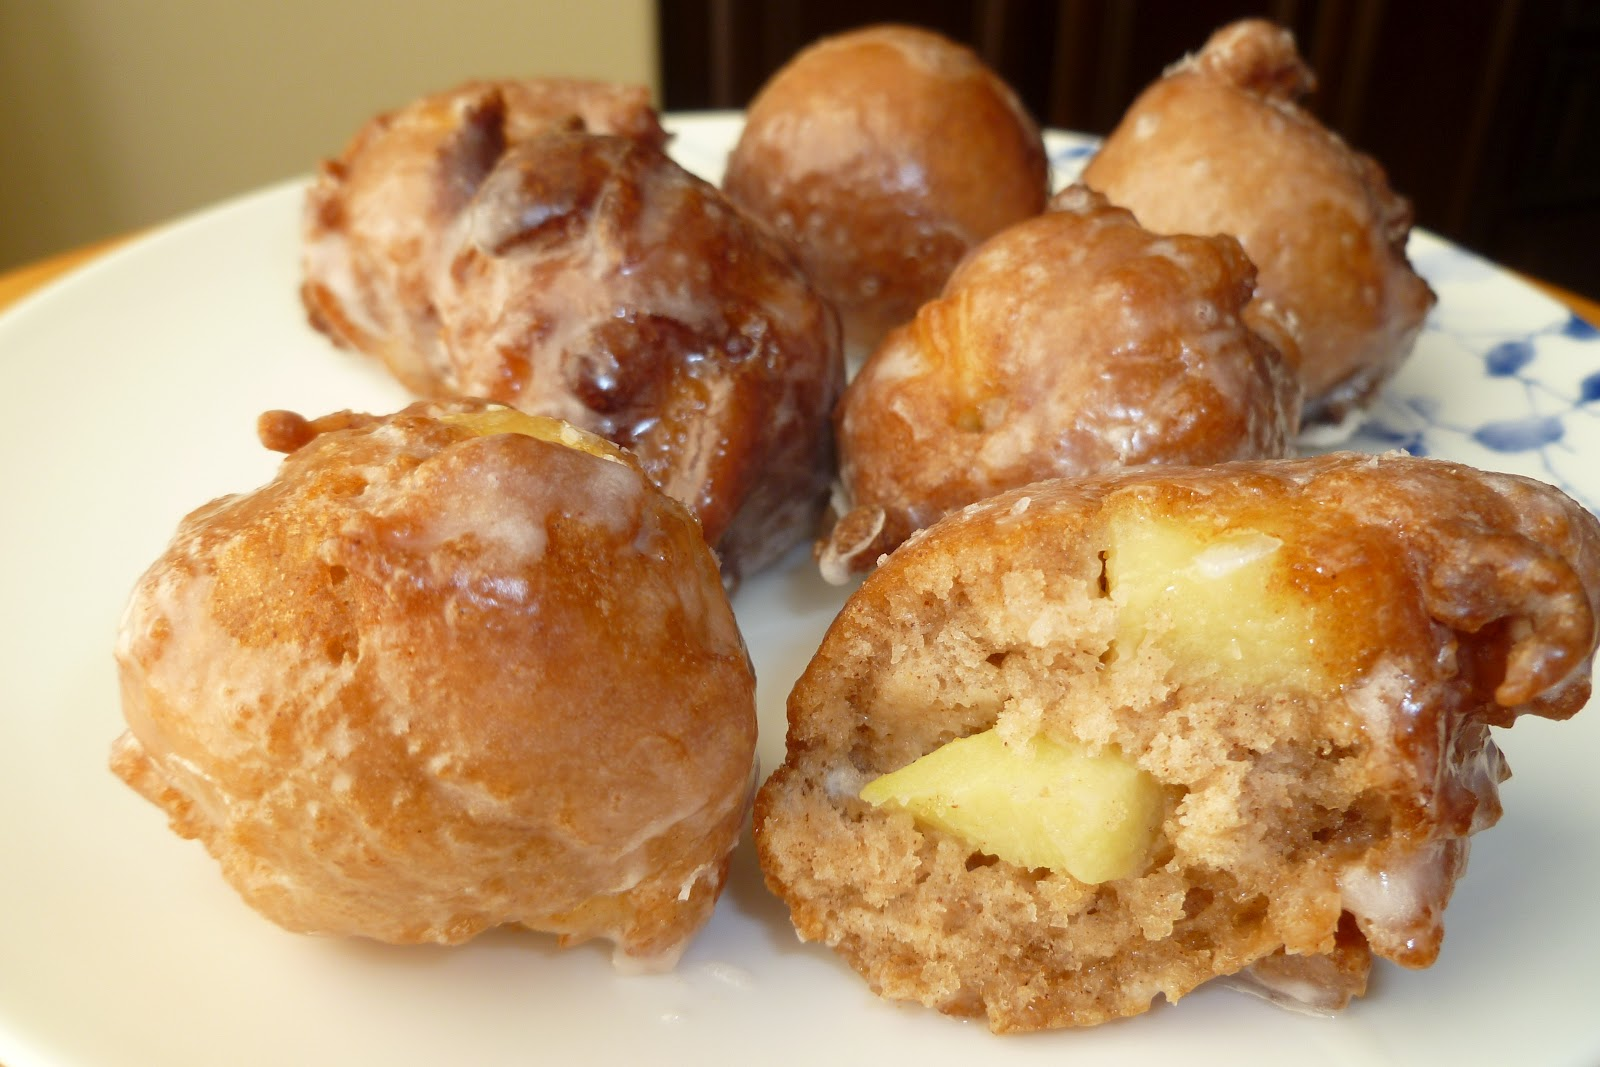 The Pastry Chef's Baking: Apple Fritters